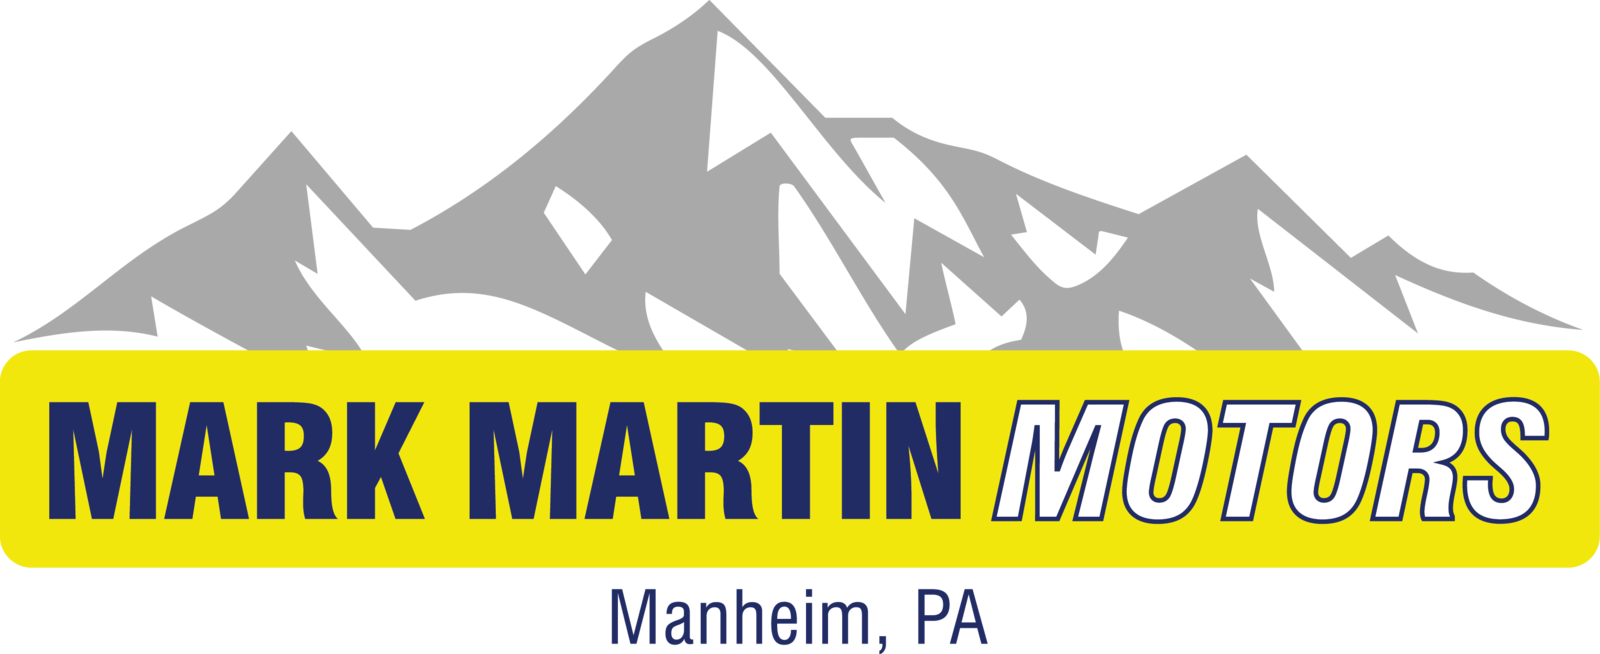 Mark Martin Motors Manheim Pa Read Consumer Reviews